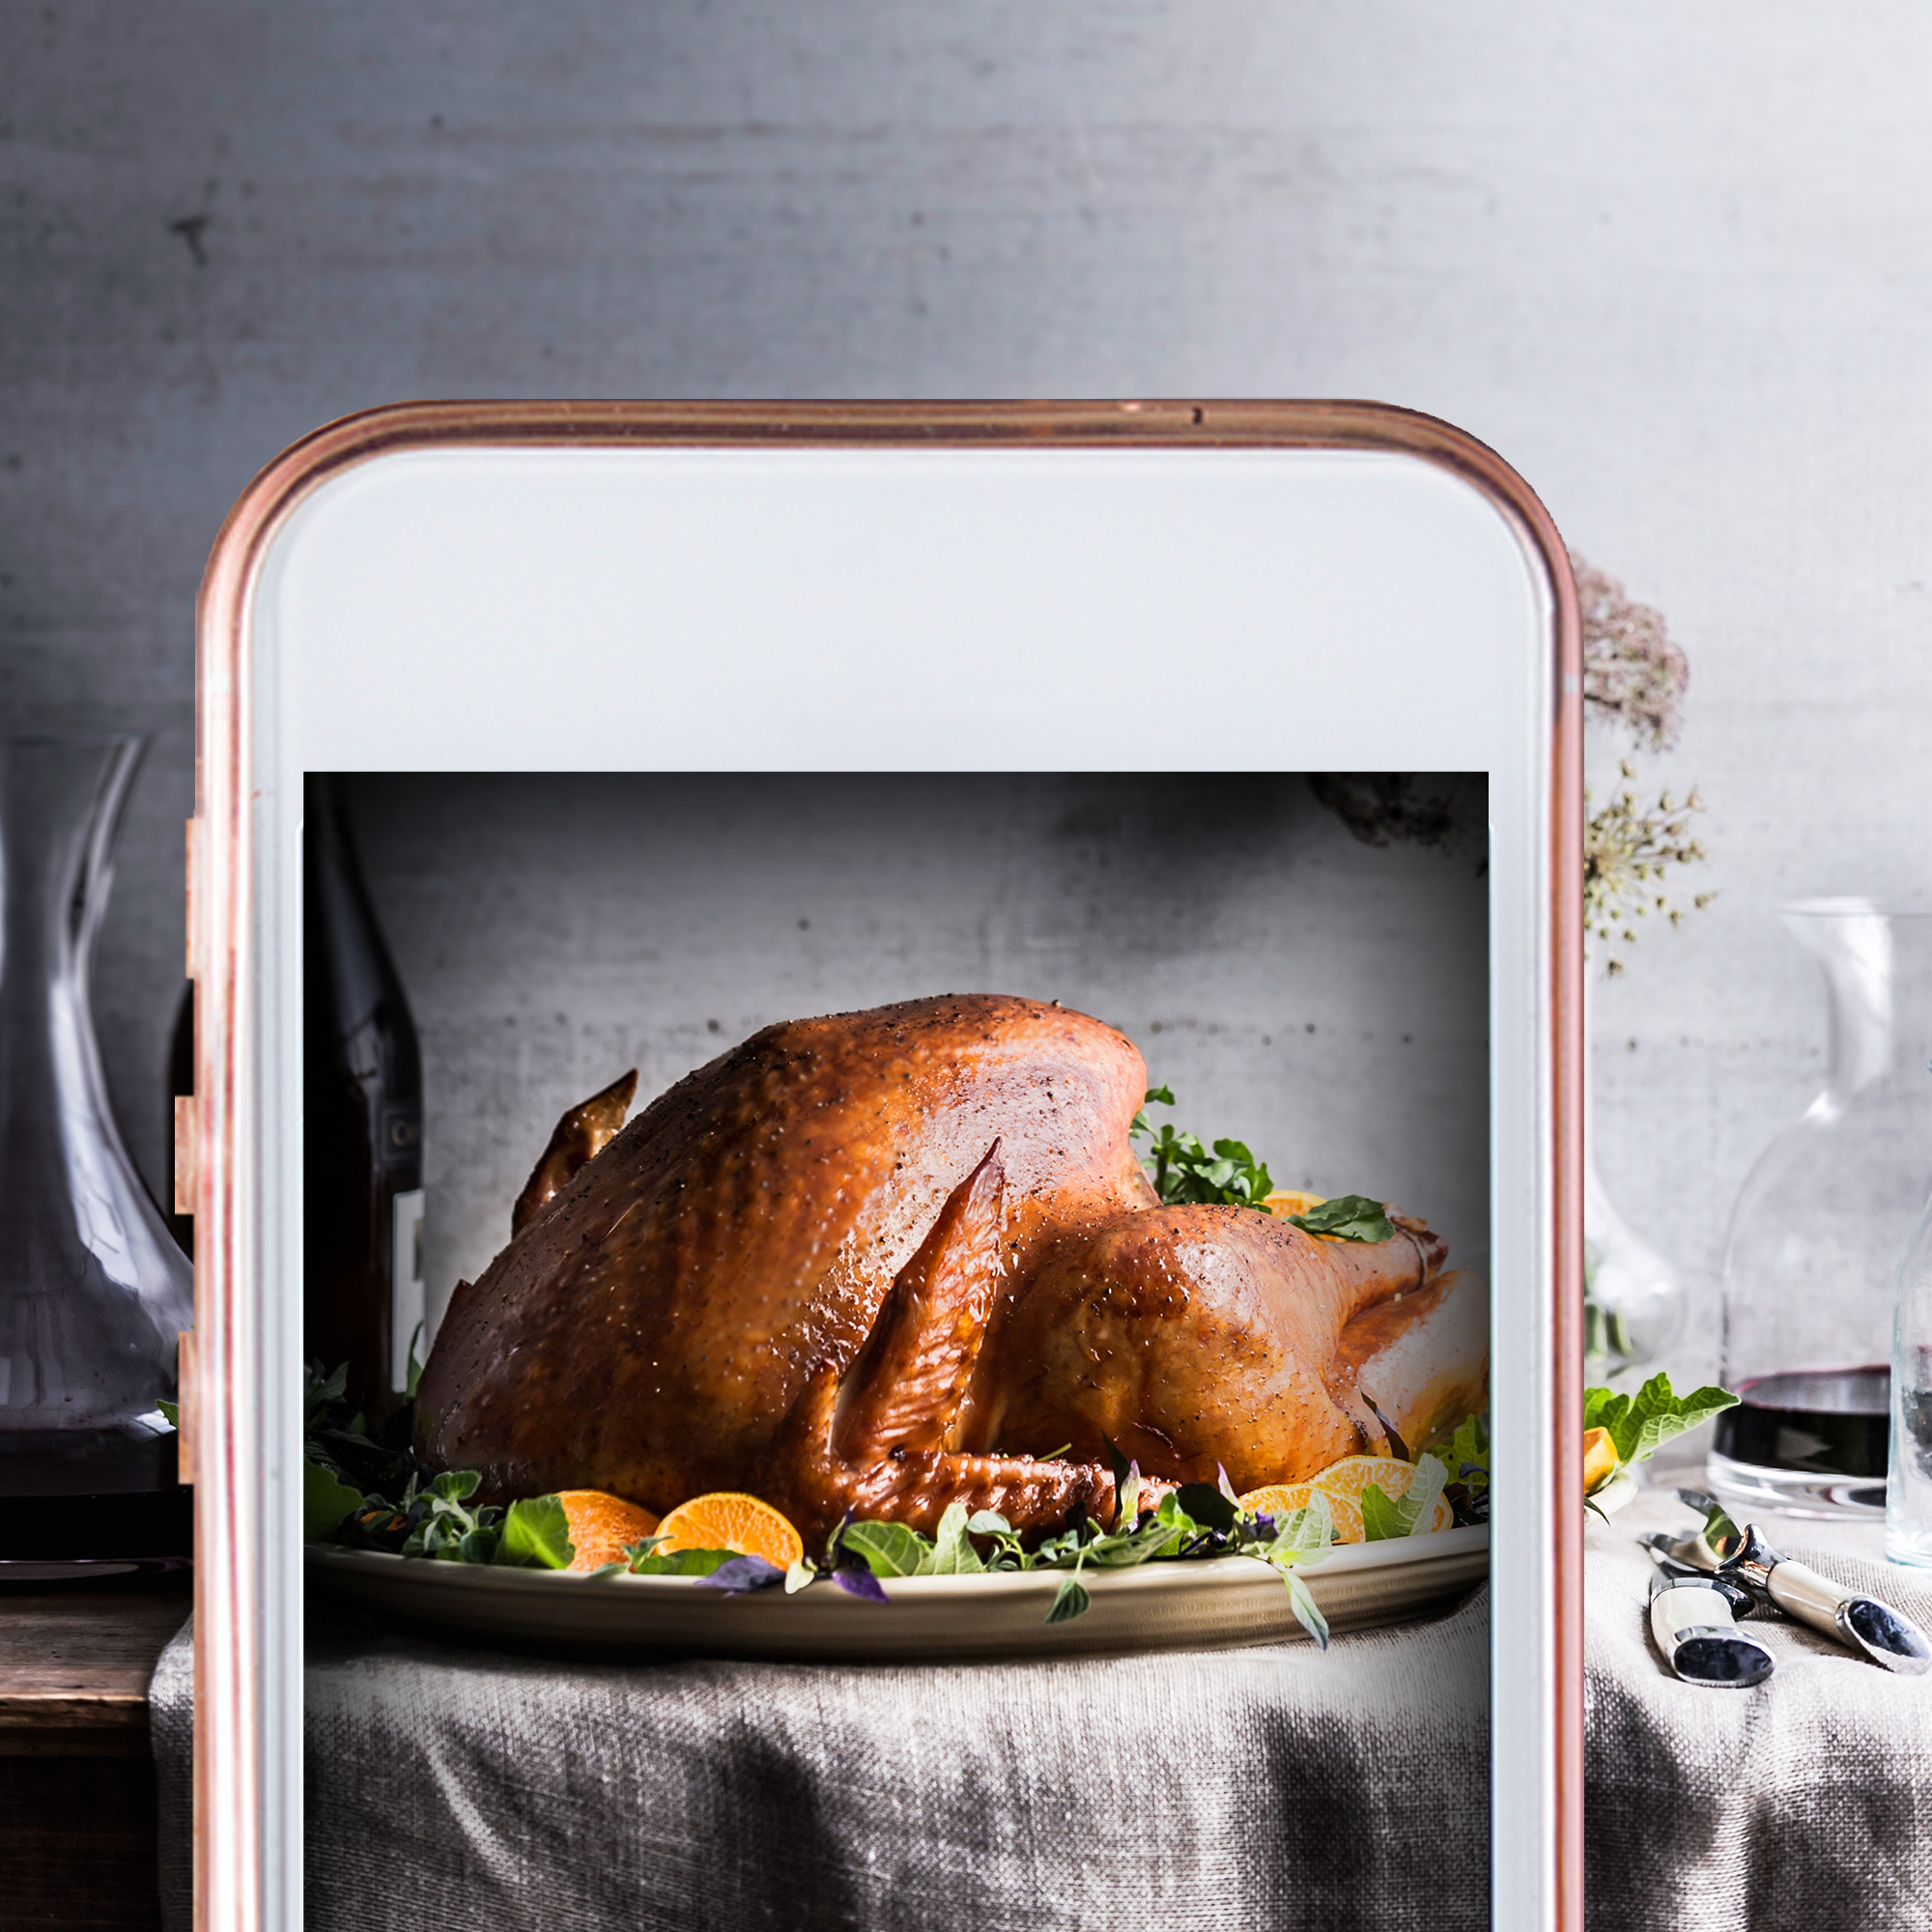 How to Make the Most Insta-Worthy Turkey,According to Celebrity Chef Marcus Samuelsson